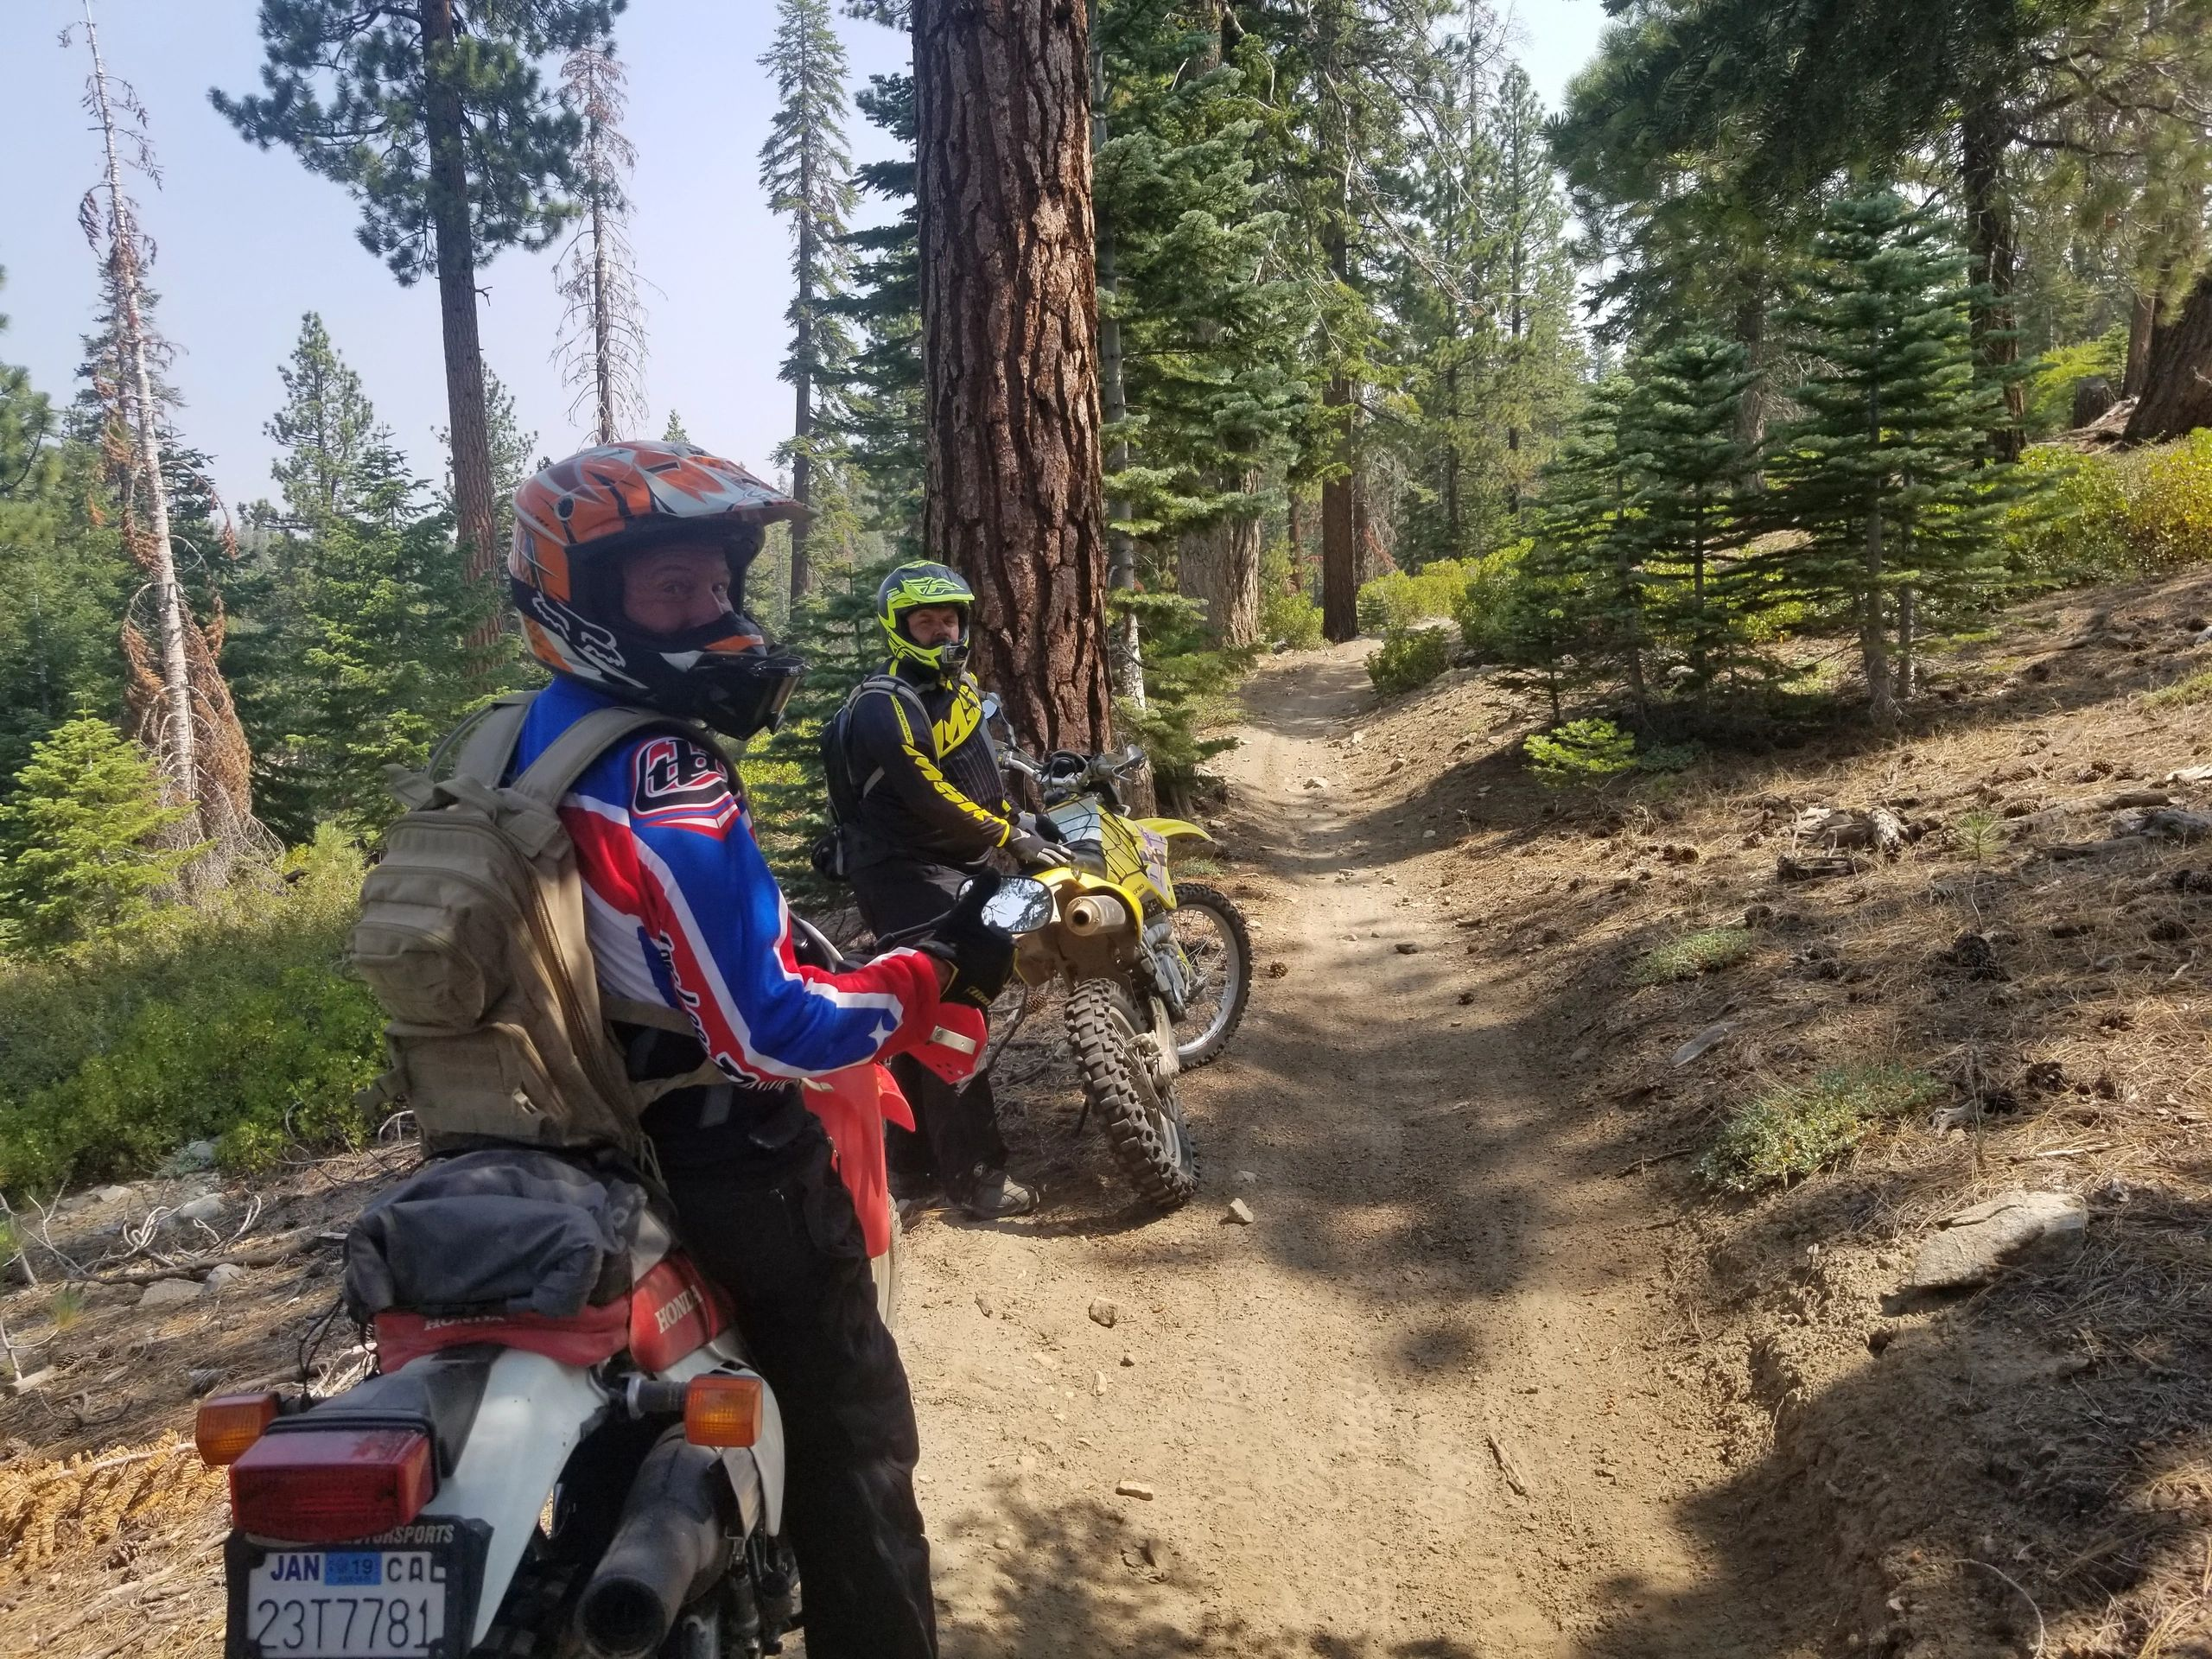 Lightweight Adventure riding in Kennedy Meadows